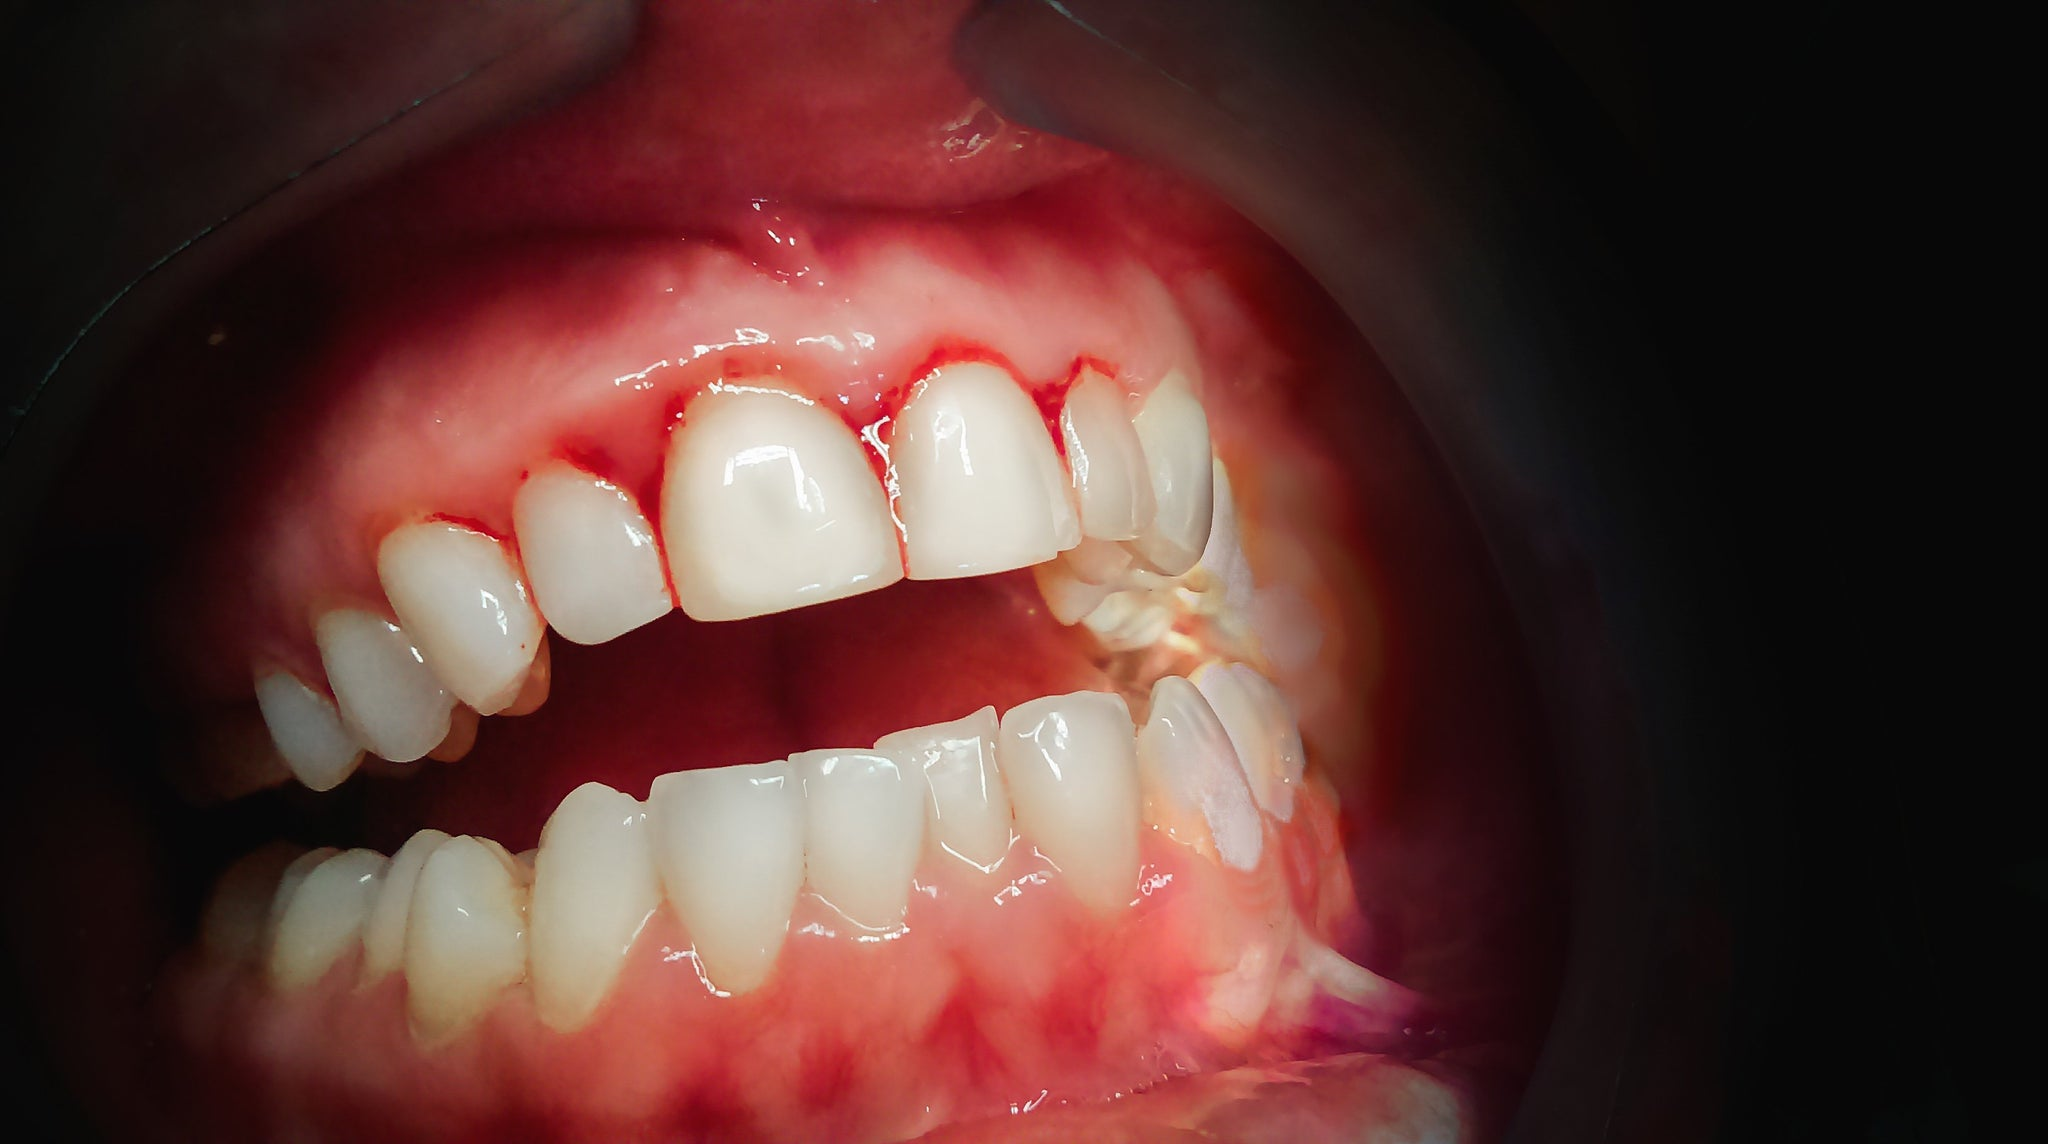 My gums bleed - Is this normal?